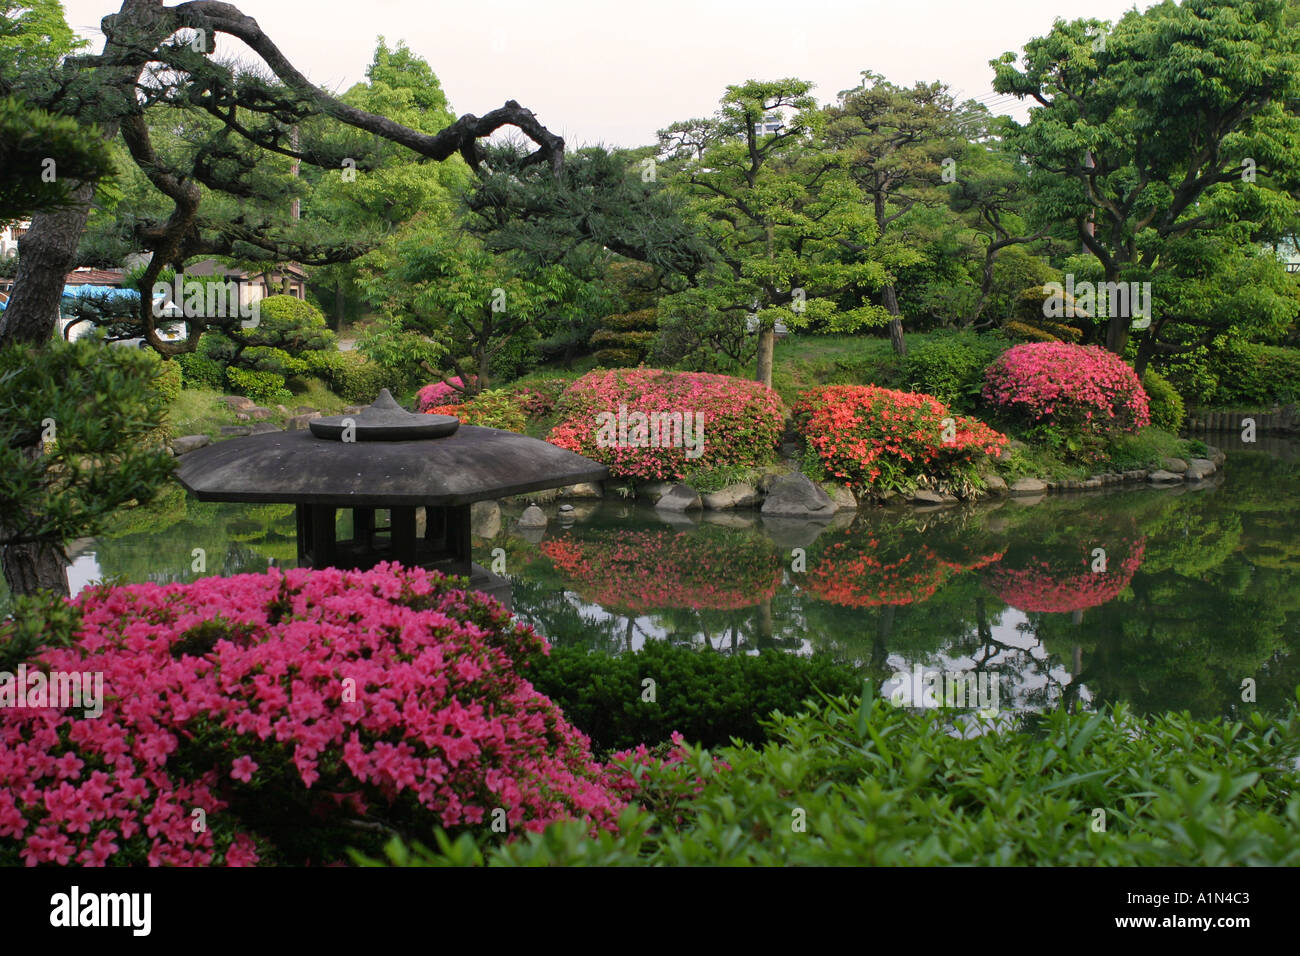 Japan Garden Flowers: Typical Lush Green Japanese Garden With Bright Pink